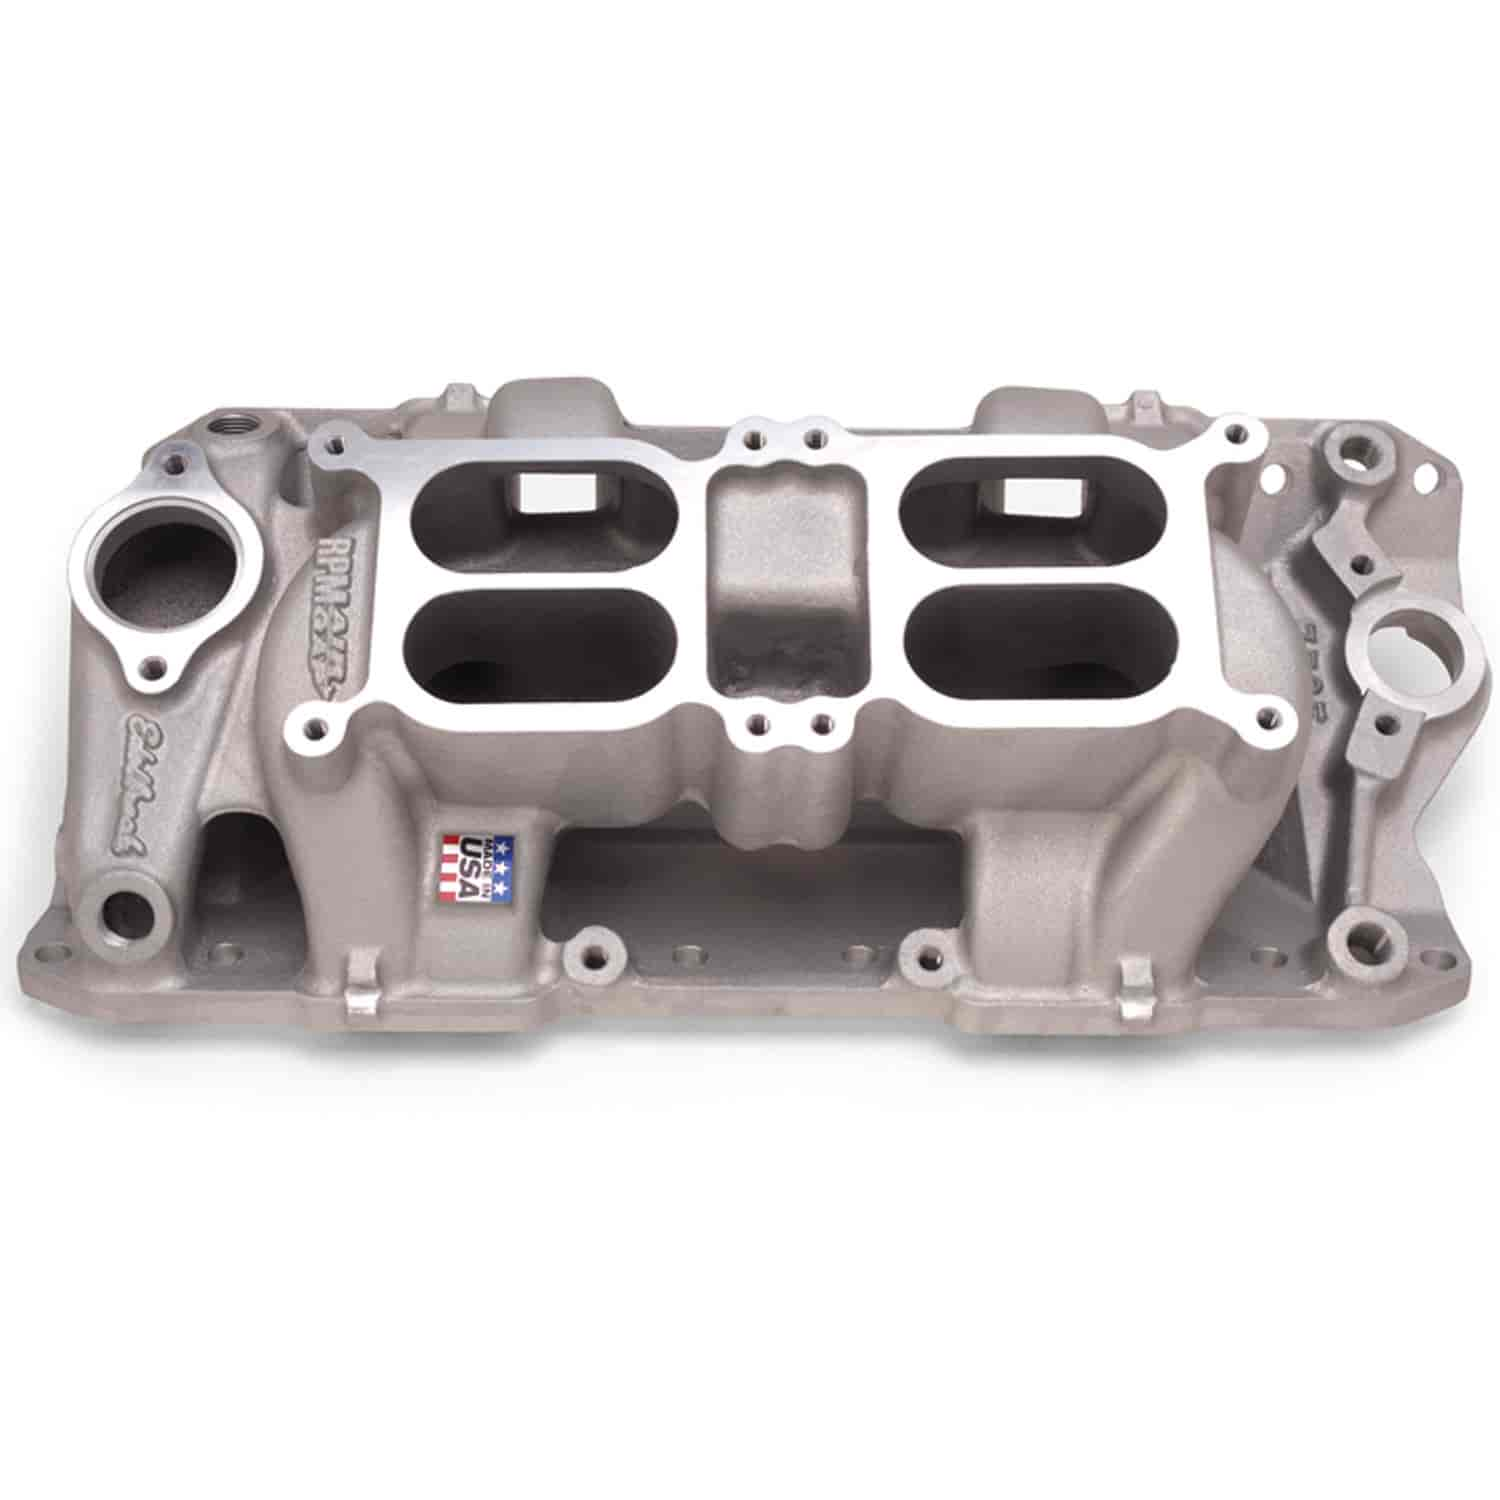 Edelbrock 7525 Performer RPM Air Gap Intake Manifold